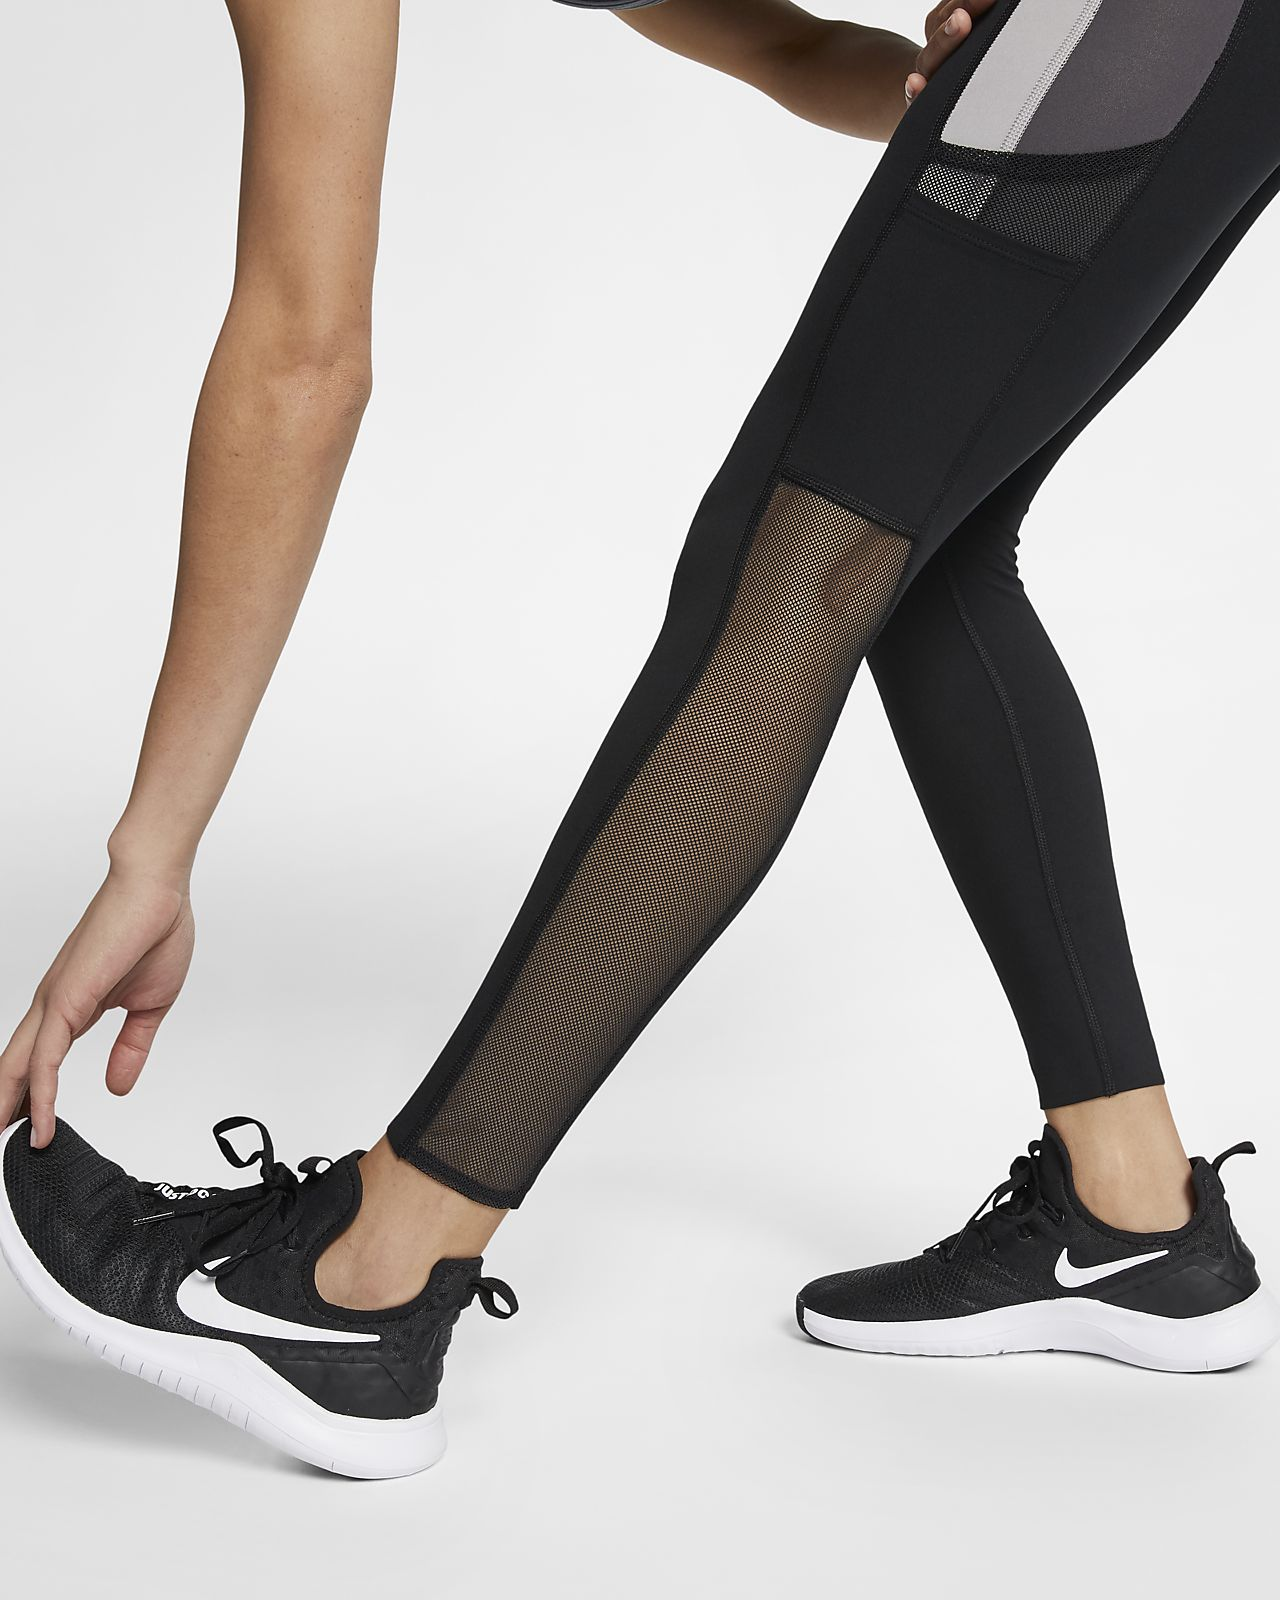 Tights a 7/8 Nike One Luxe para mulher